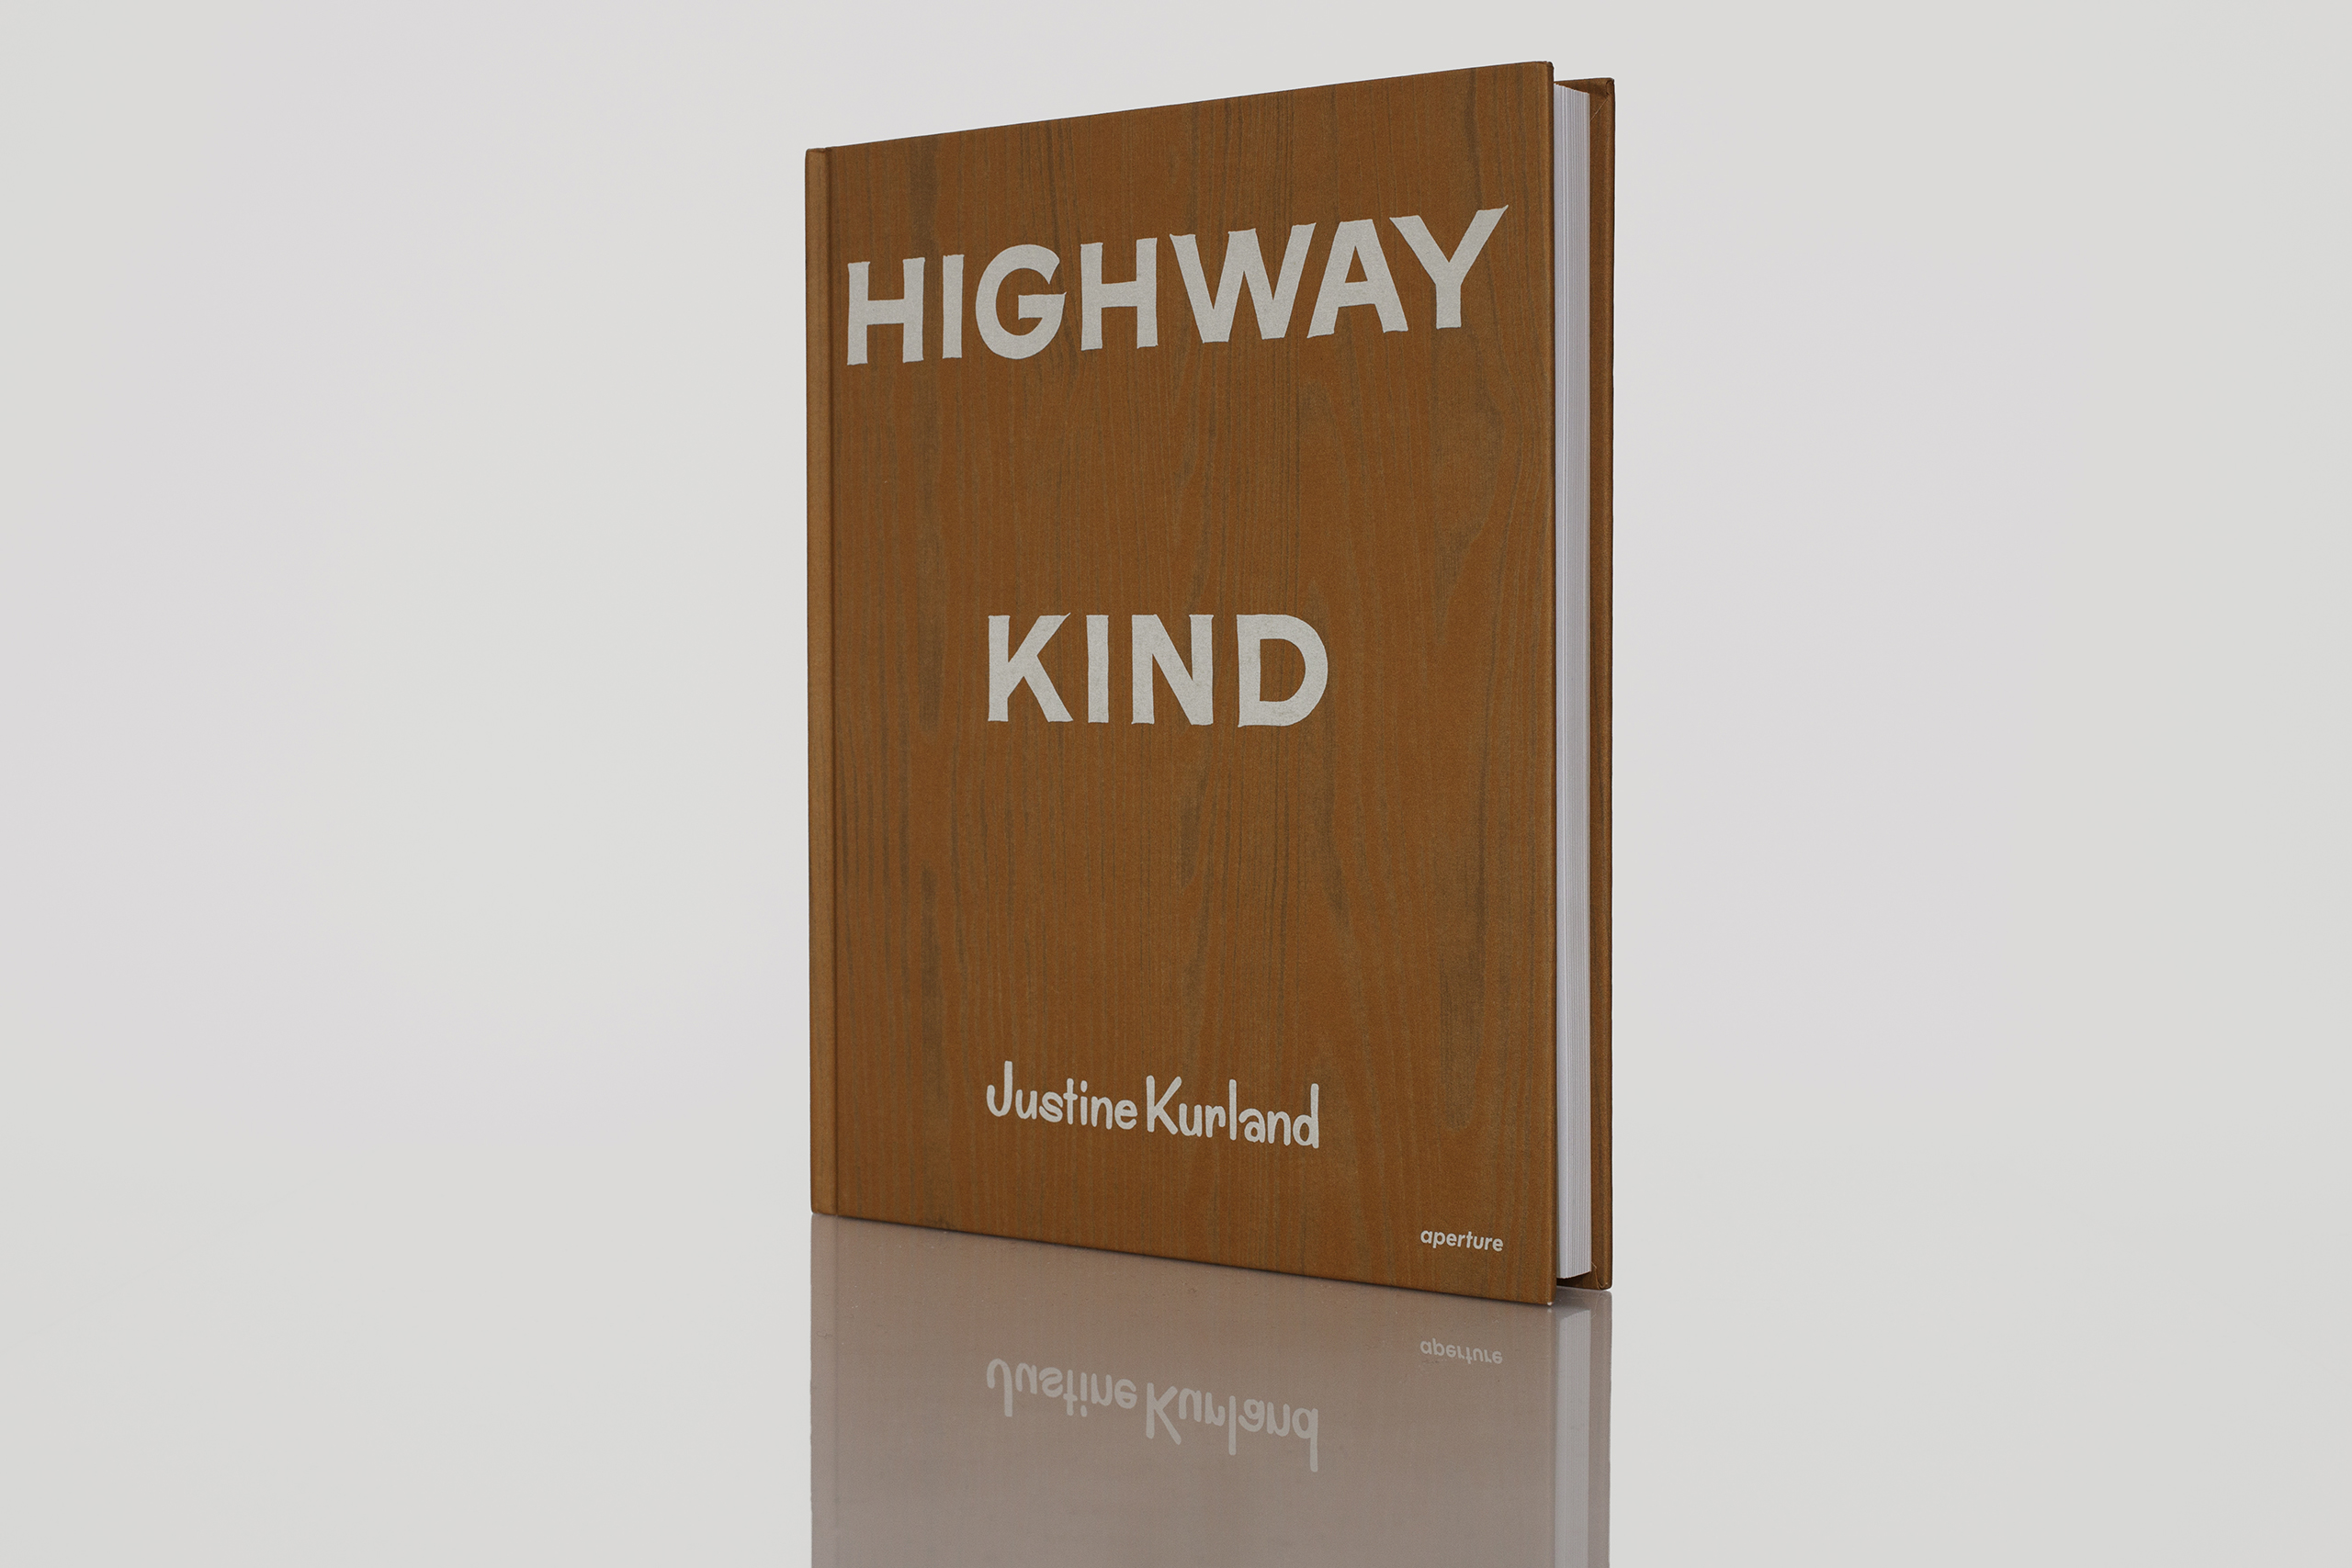 Highway Kind by Justine KurlandPublished by Aperture